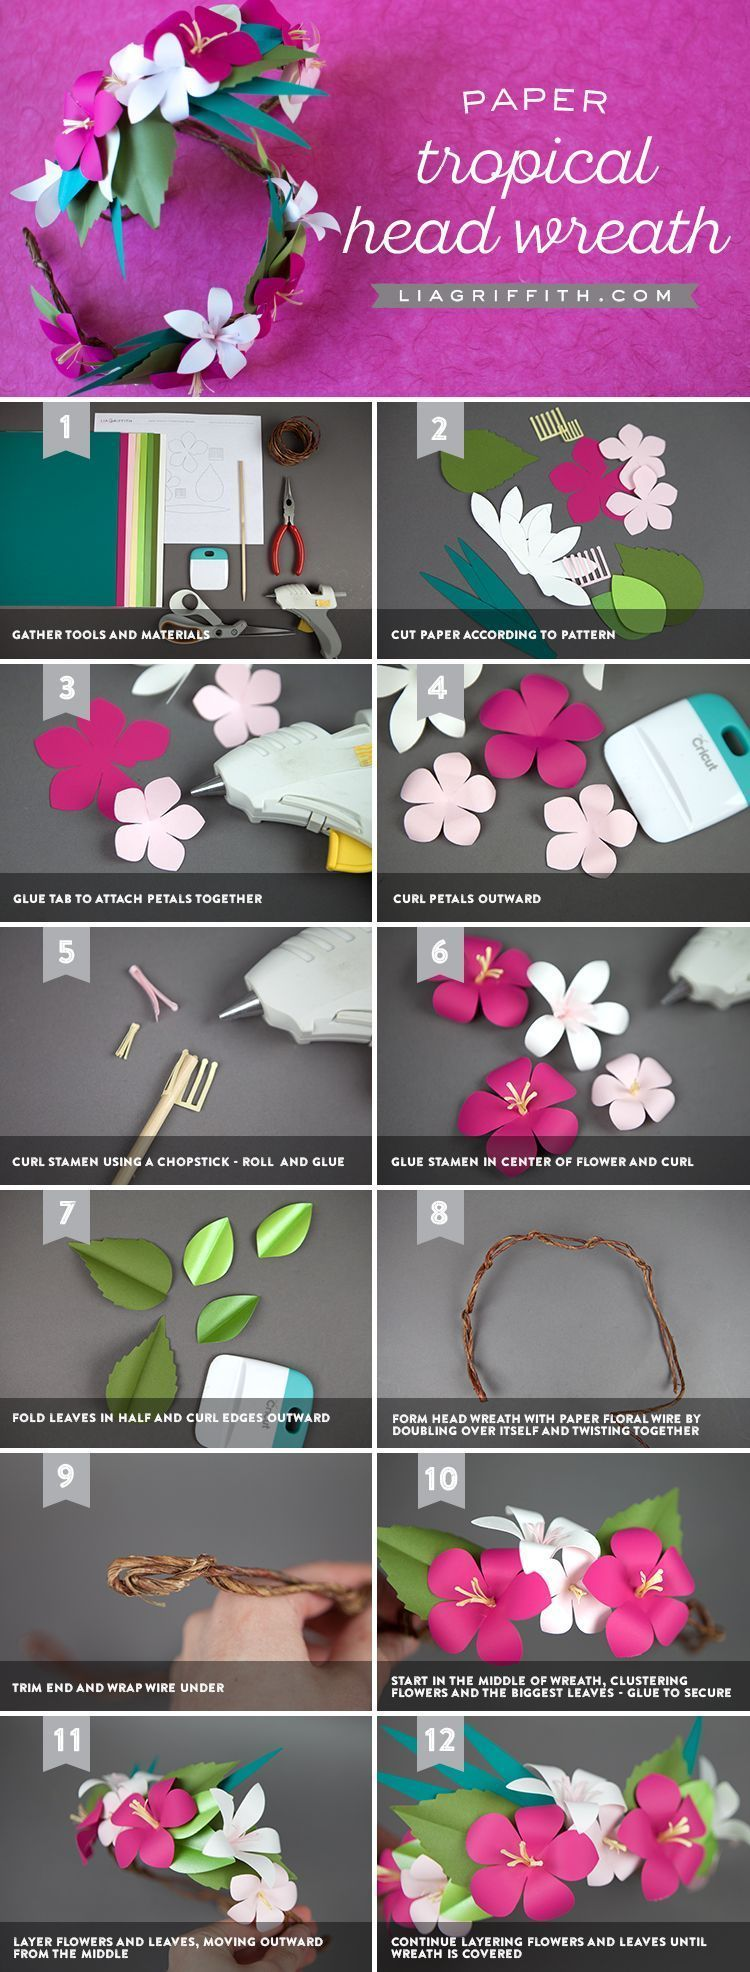 #wreathhow #tropical #tropical #tropical #tropical #tropical #flower #wreath #flower #wreath #crown #crown #head #adiy #headTropical Flower Crown How to Make a Tropical Head WreathHow to Make a Tropical Head Wreath #flowerheadwreaths #wreathhow #tropical #tropical #tropical #tropical #tropical #flower #wreath #flower #wreath #crown #crown #head #adiy #headTropical Flower Crown How to Make a Tropical Head WreathHow to Make a Tropical Head Wreath #flowerheadwreaths